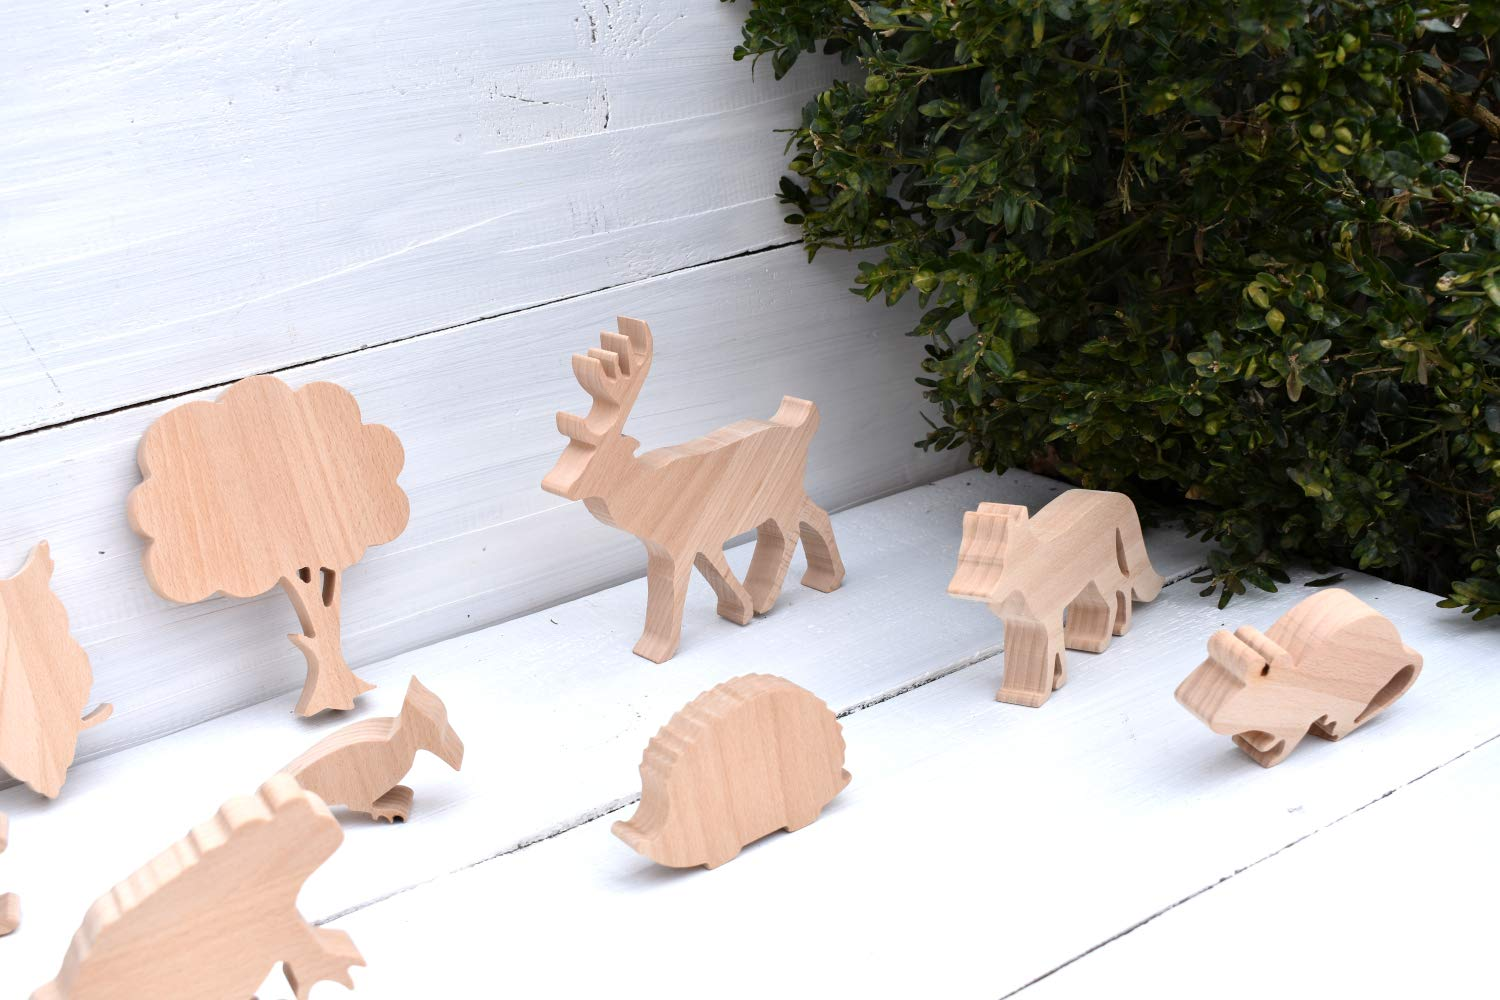 SET 8 Wooden Toys Forest Wild Animals Play Set For Kids Construction Game Organic Wood Toy Figures Eco-friendly Gifts For Children DIY Wolf